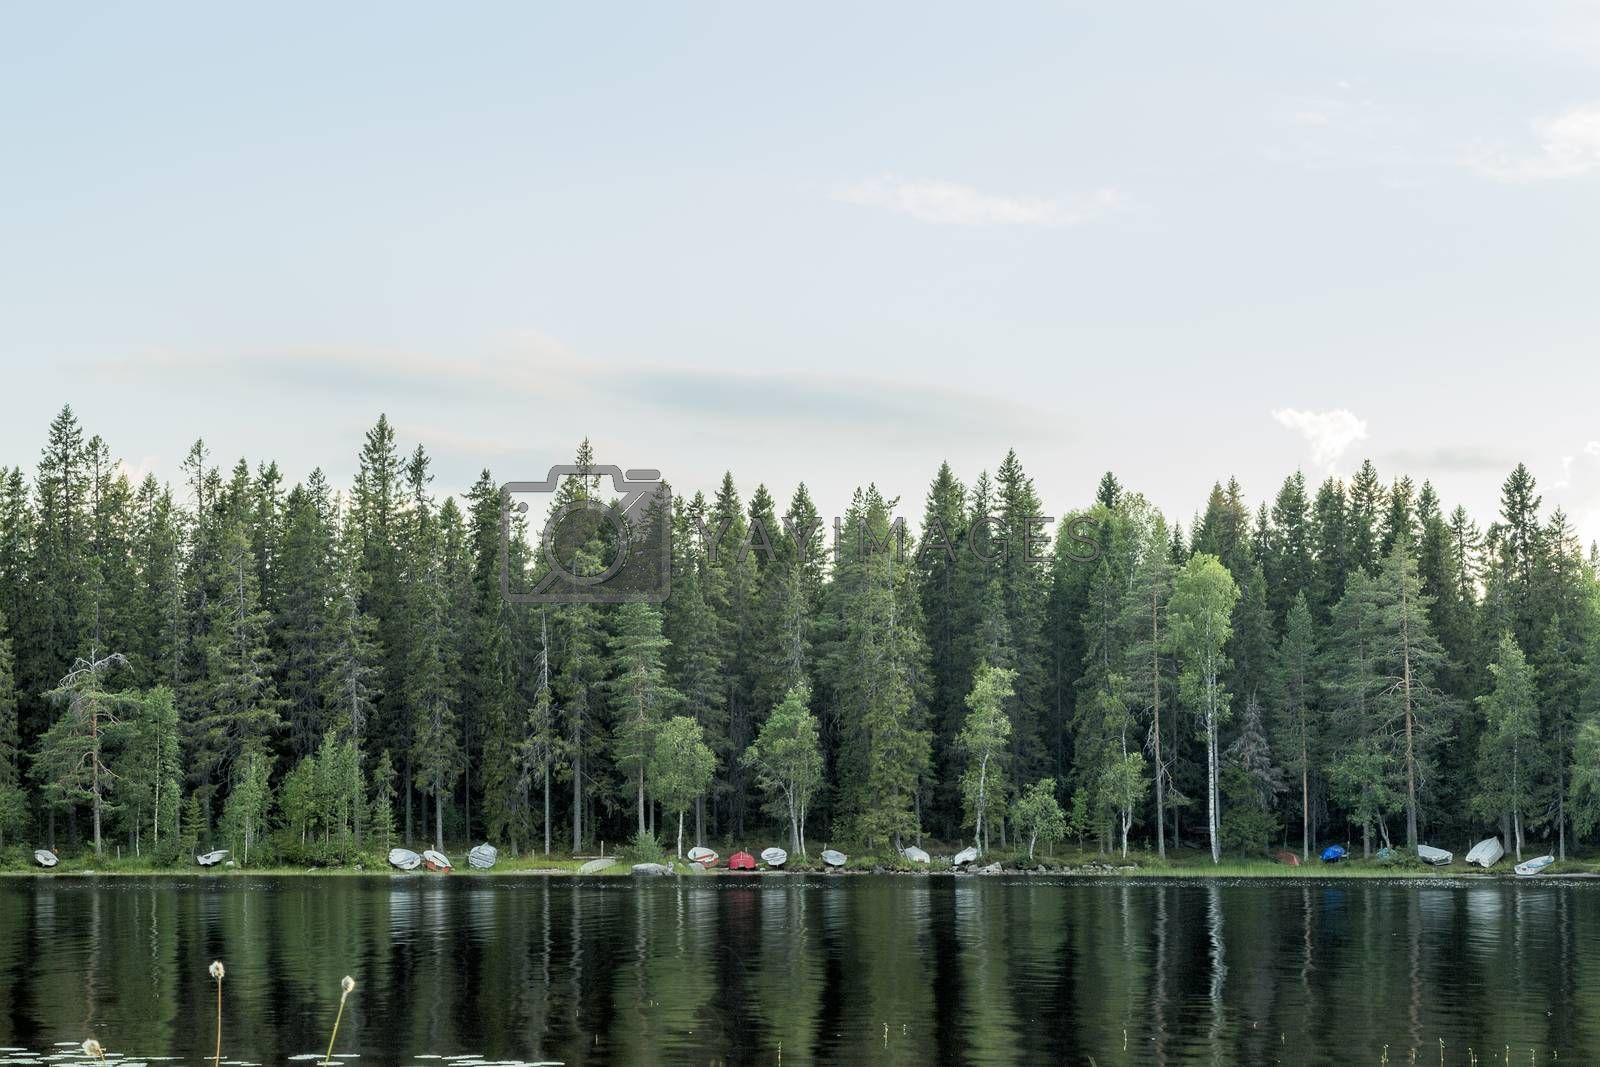 Rowboats by Lake with forest and sky.